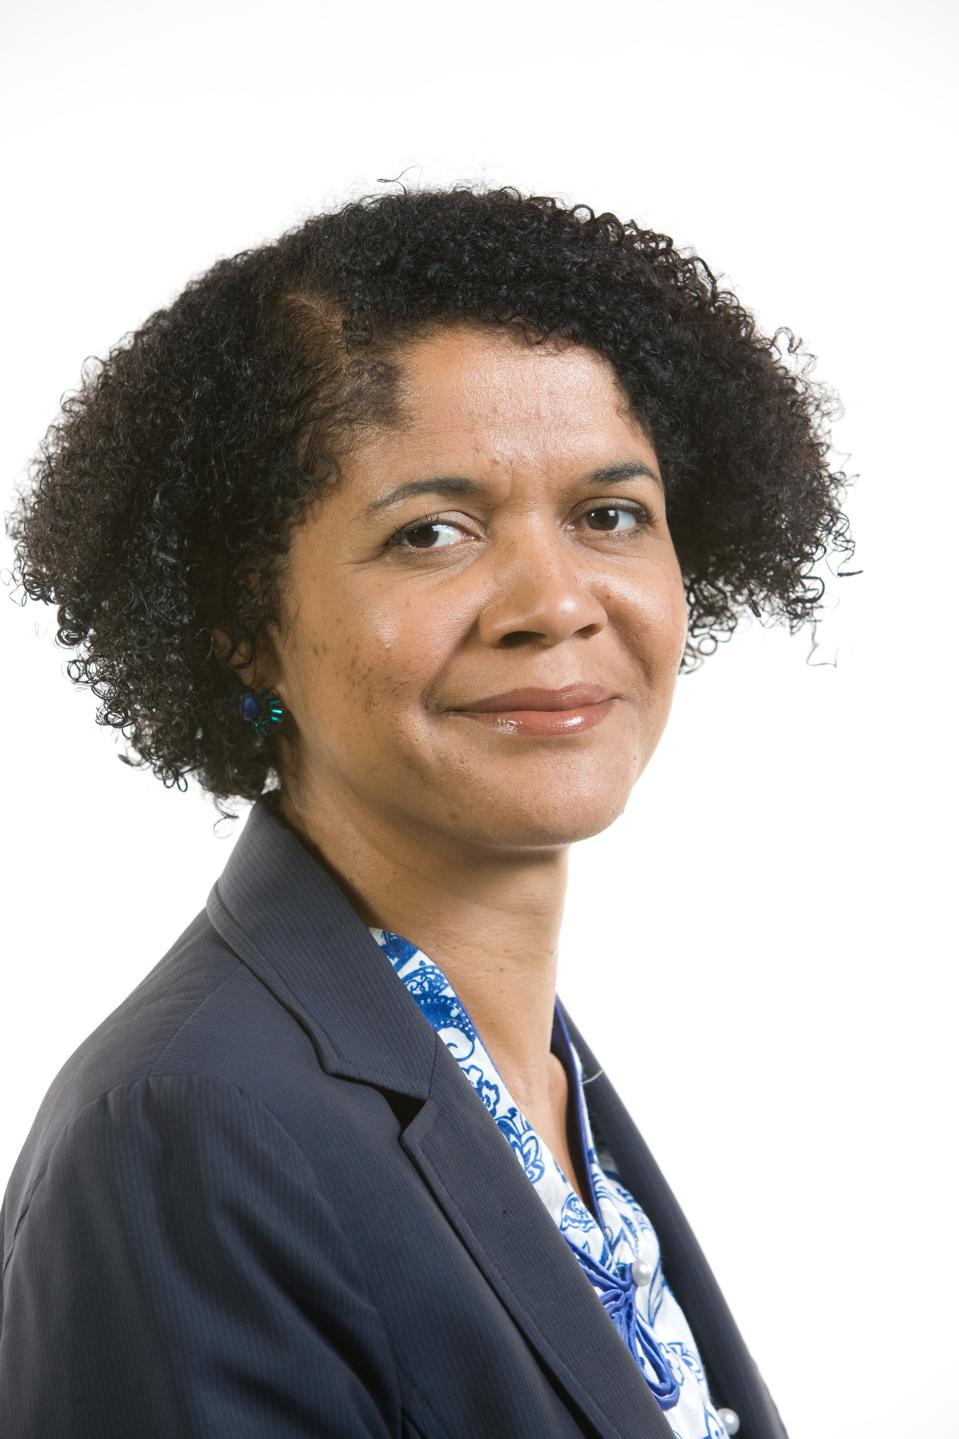 Chi Onwurah, Labour's Shadow Minister for Industrial Strategy, Science and Innovation.